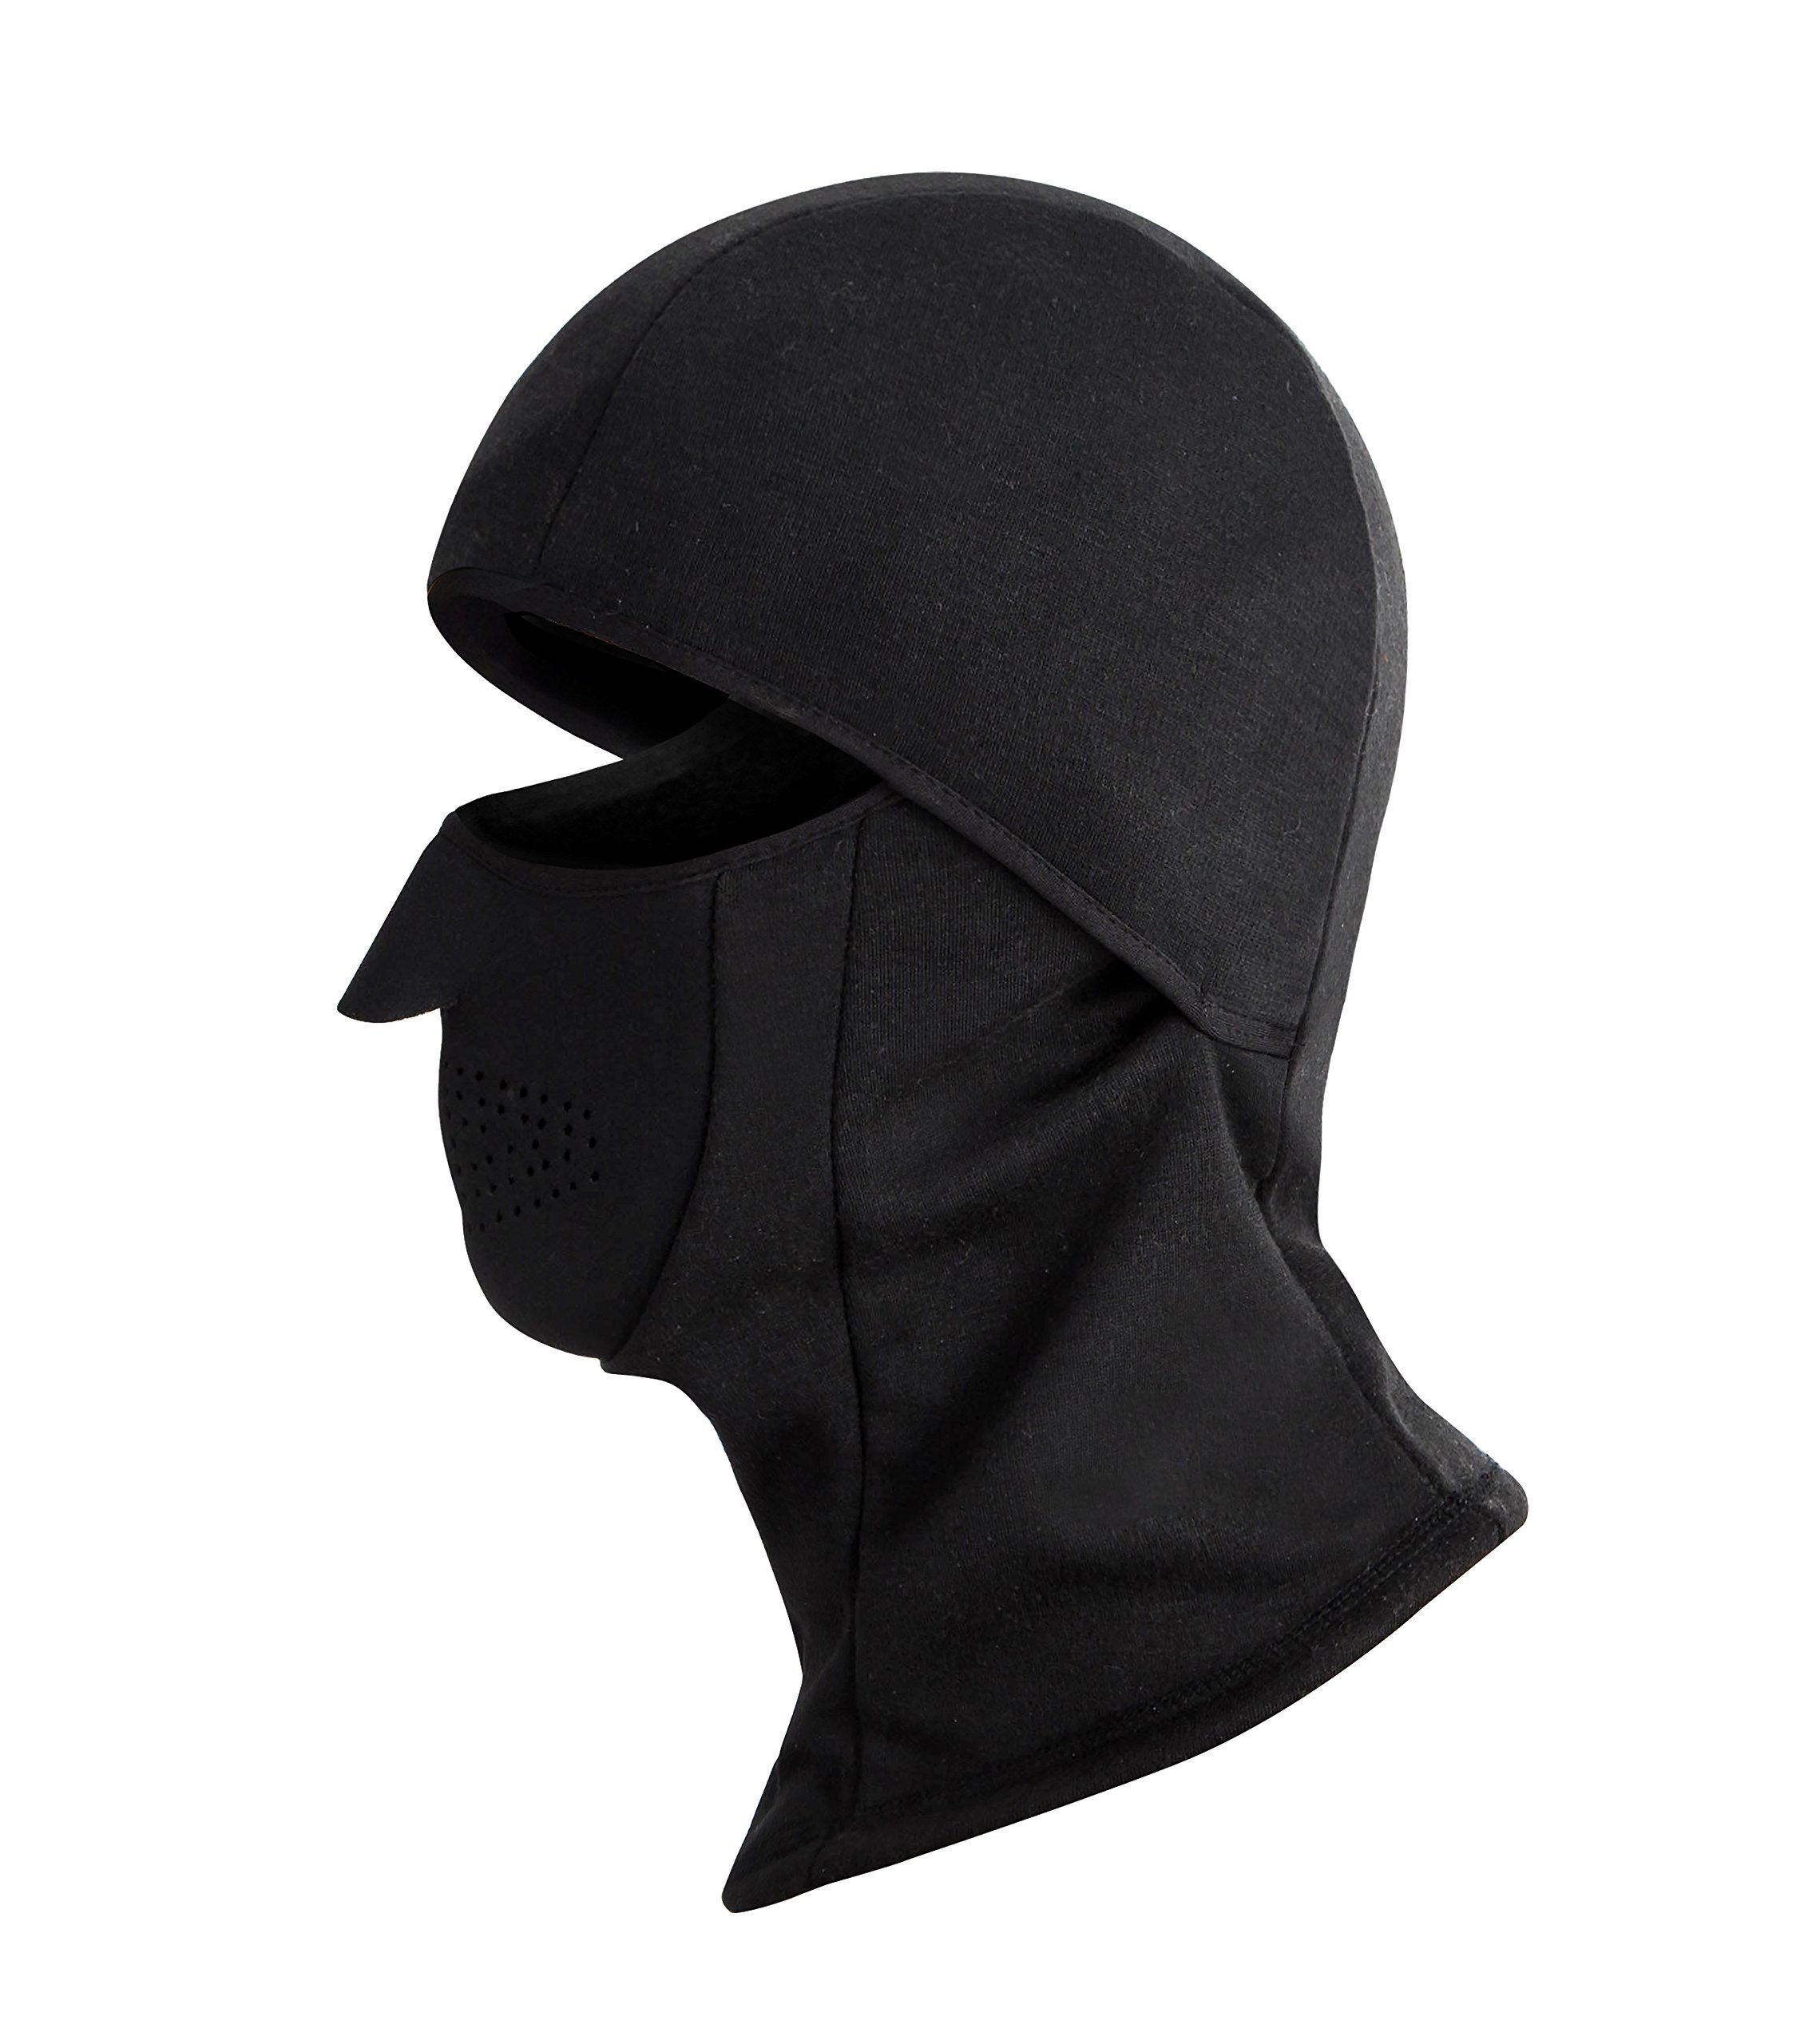 ZERDOCEAN Winter Windproof Fleece Thermal Full Face Motorcycle Ski Mask Balaclava